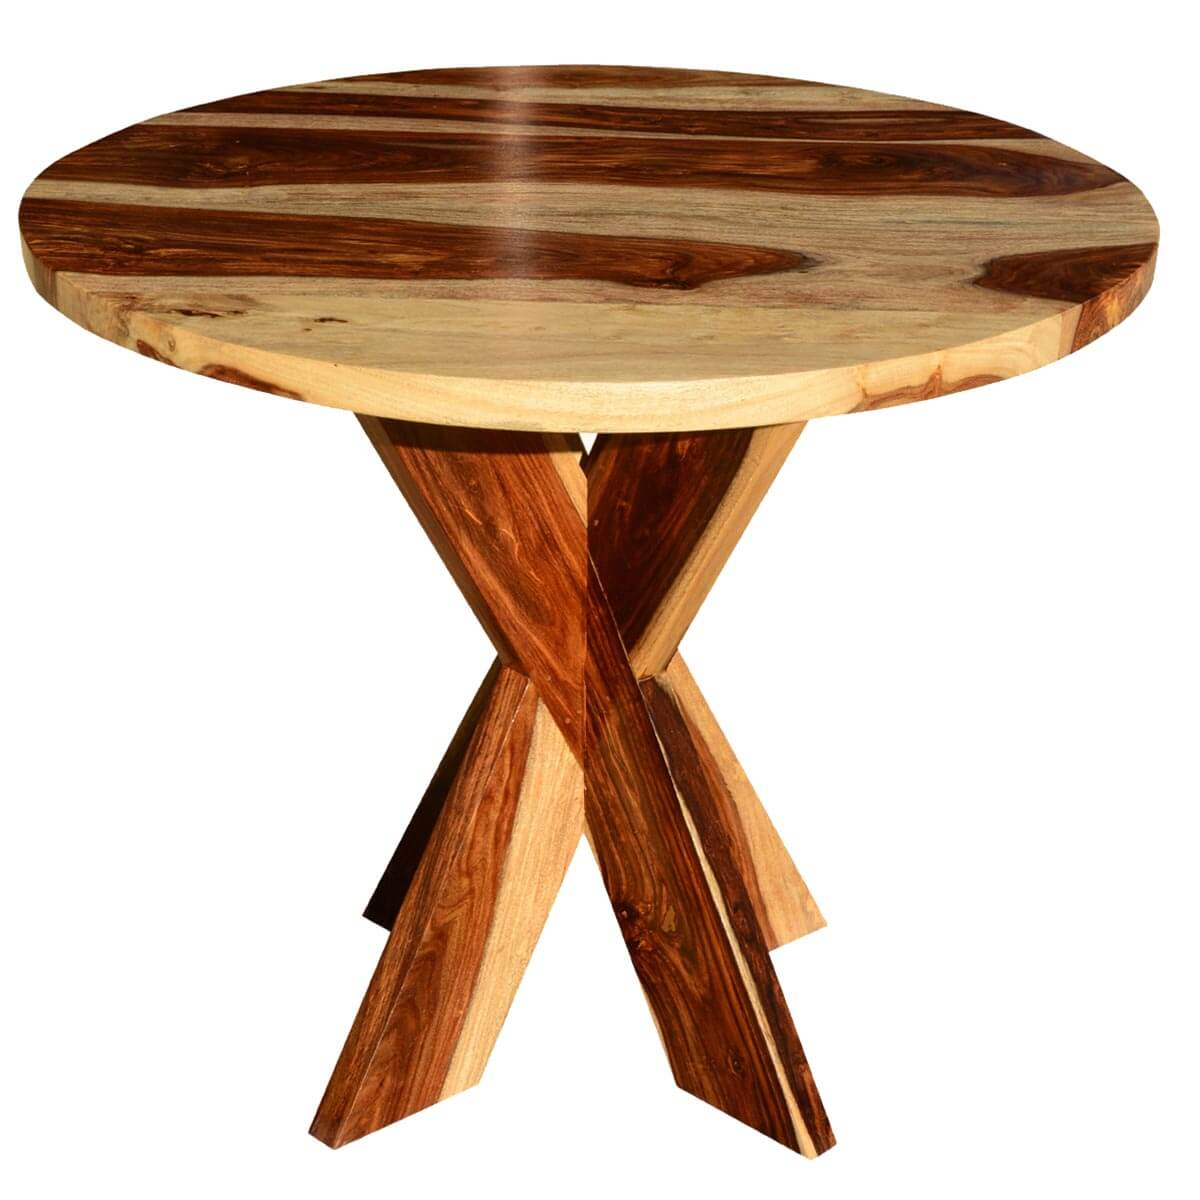 Round Solid Wood Dining Table: Dallas Solid Wood X Pedestal Round Dining Table